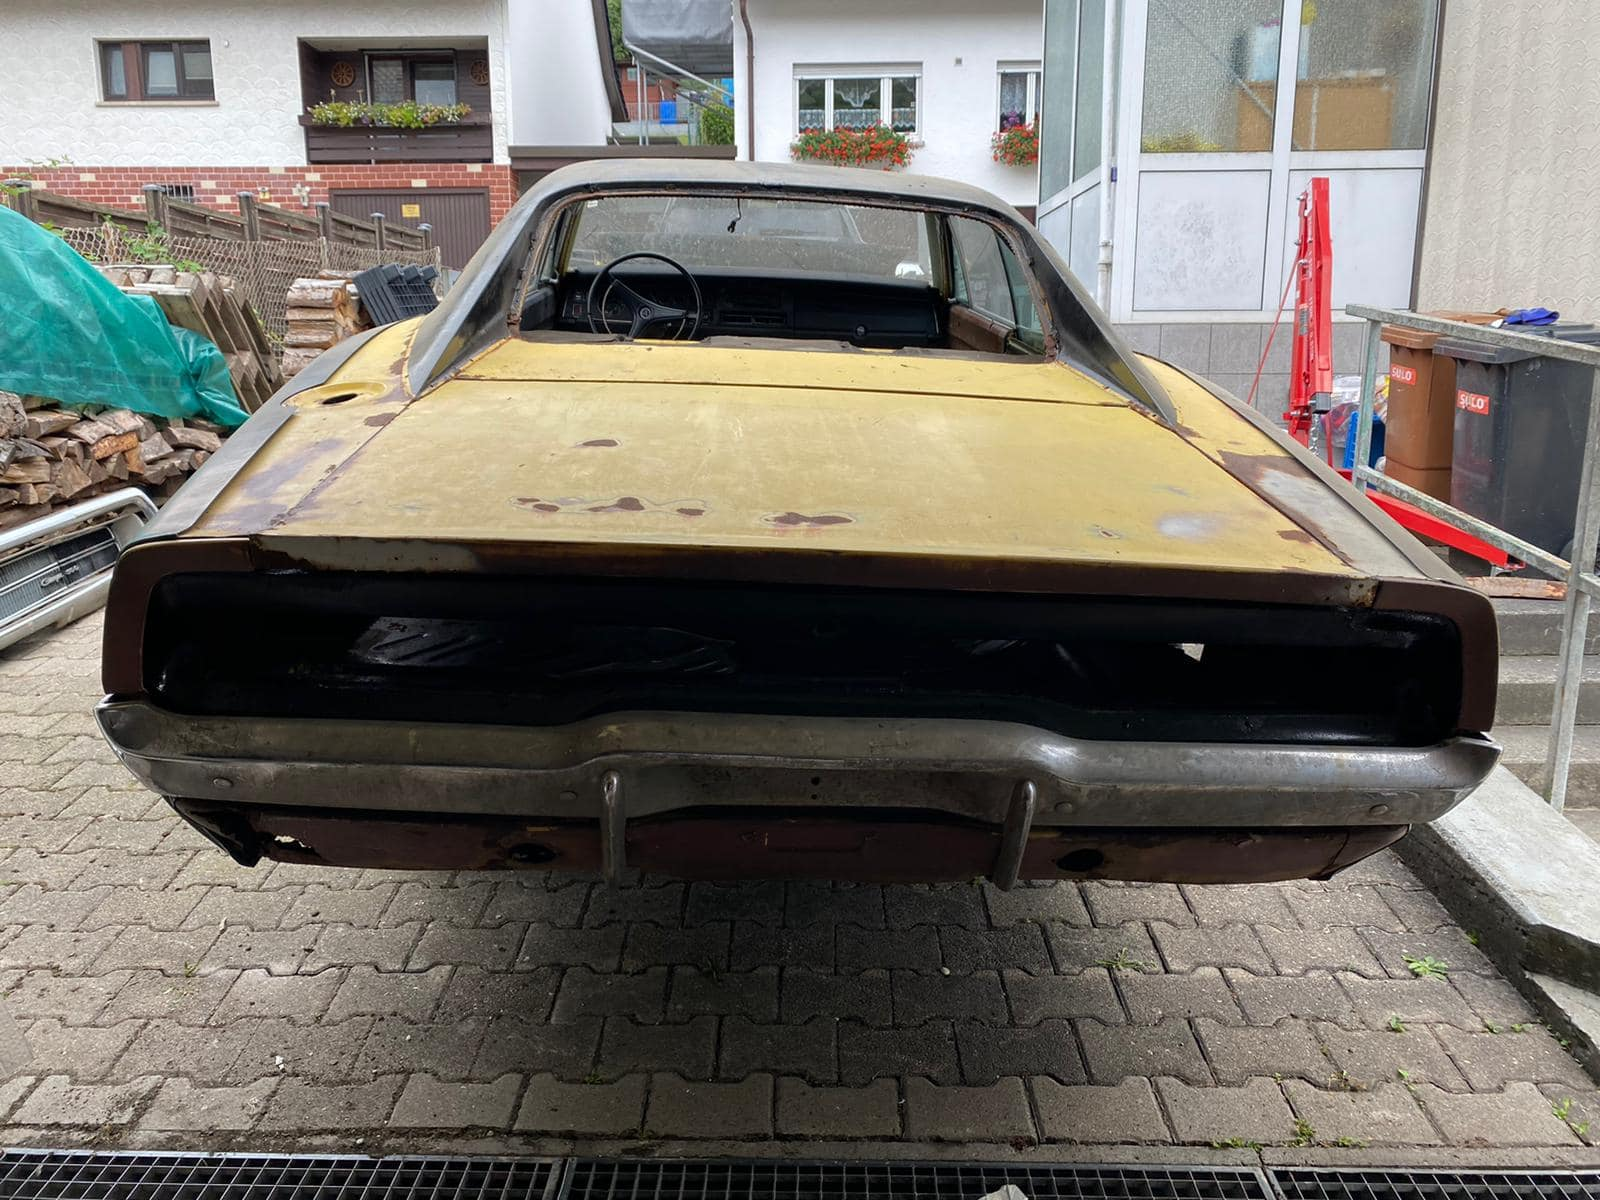 oldtimer-youngtimer-restauration-polen-tschechien-dodge-charger-karosserie-restauration